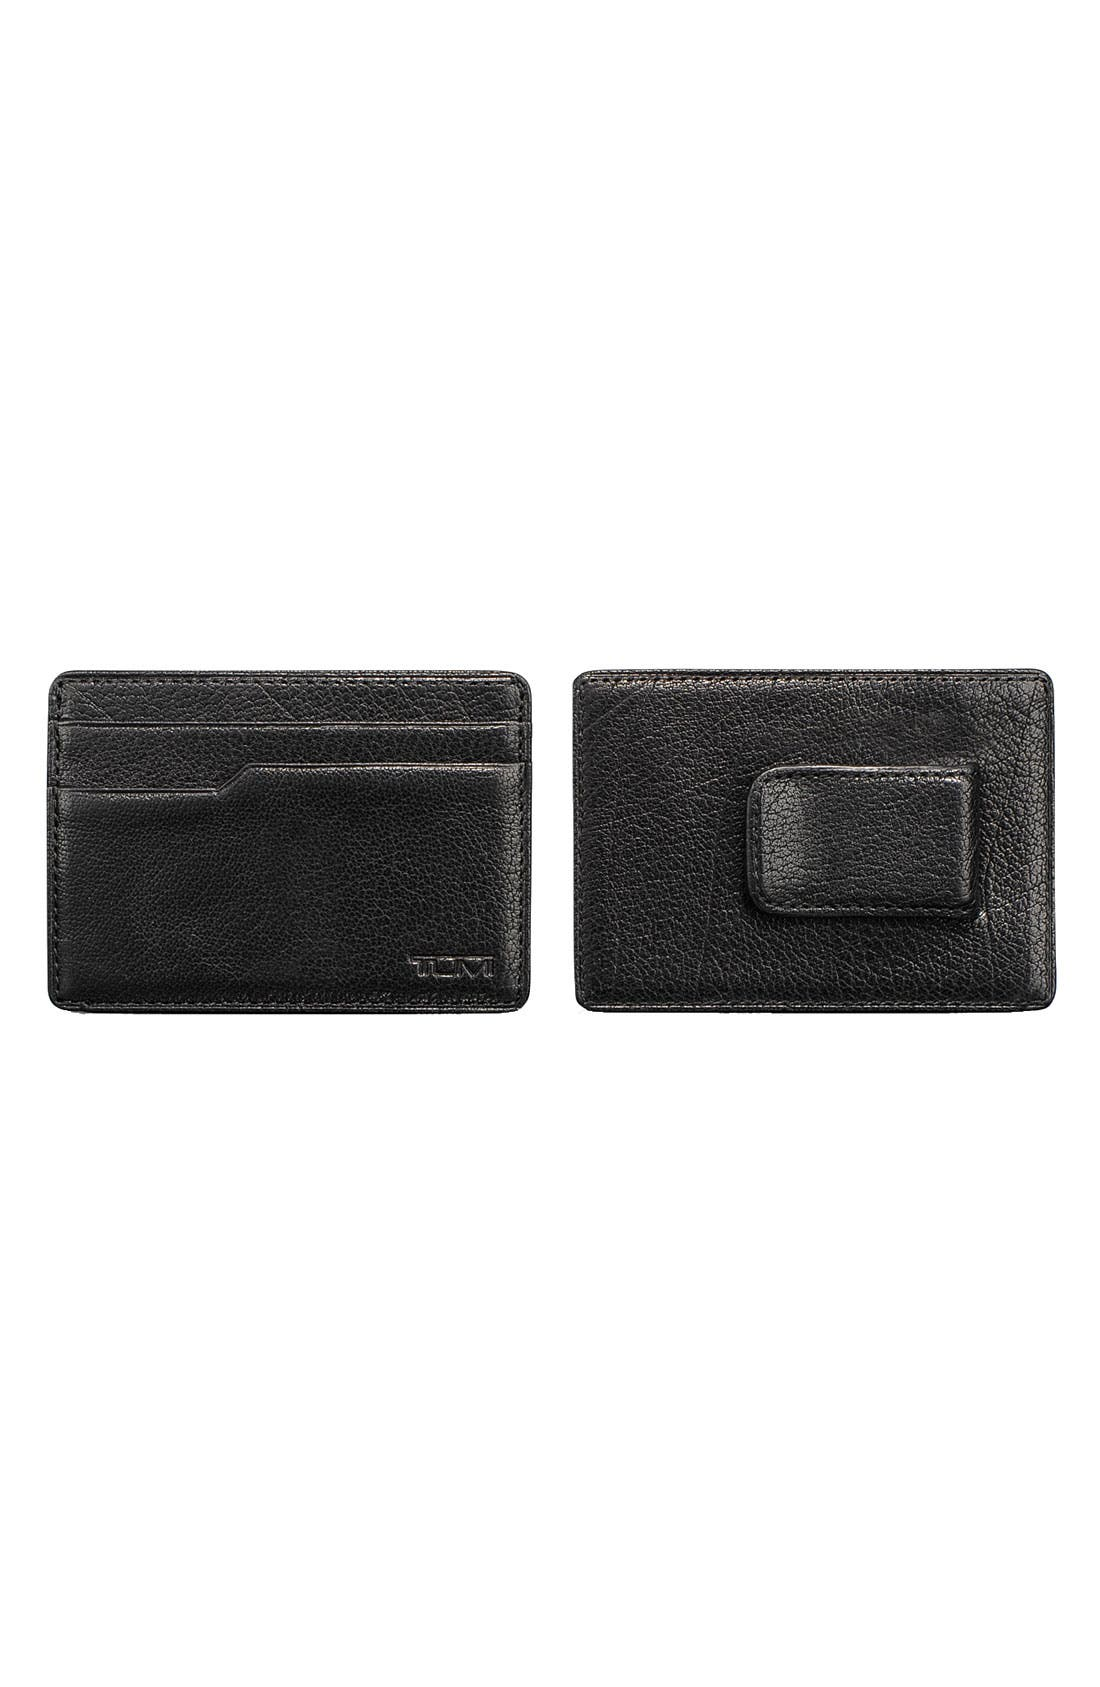 Alternate Image 1 Selected - Tumi 'Sierra' Money Clip Card Case